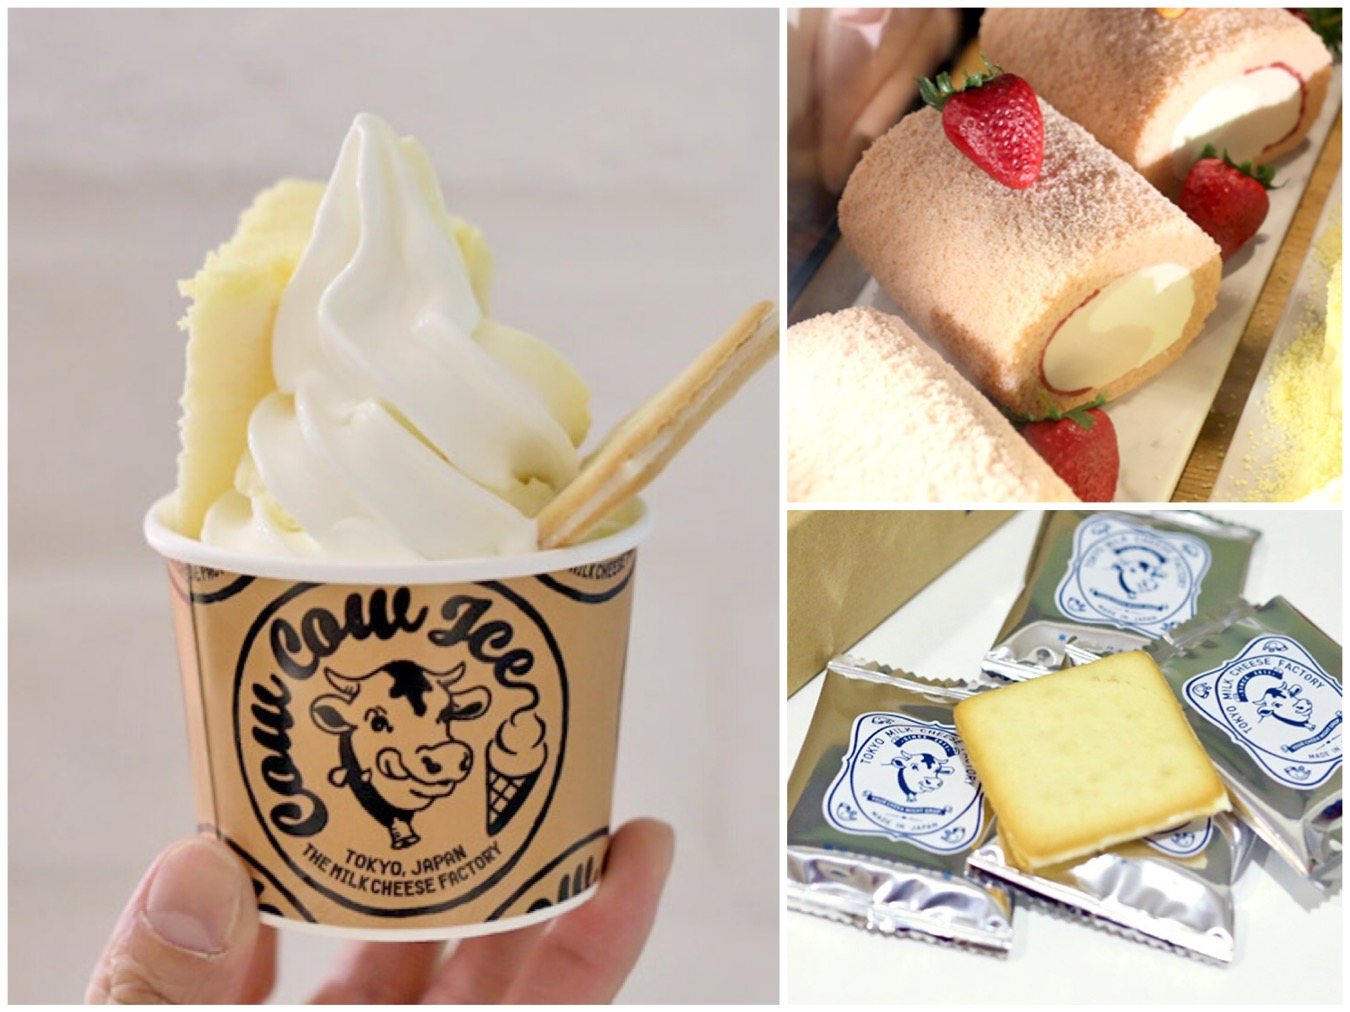 Tokyo Milk Cheese Factory Singapore - Popular Cheese Cookie Shop Opens At Raffles City, Also With Cheese Sundae